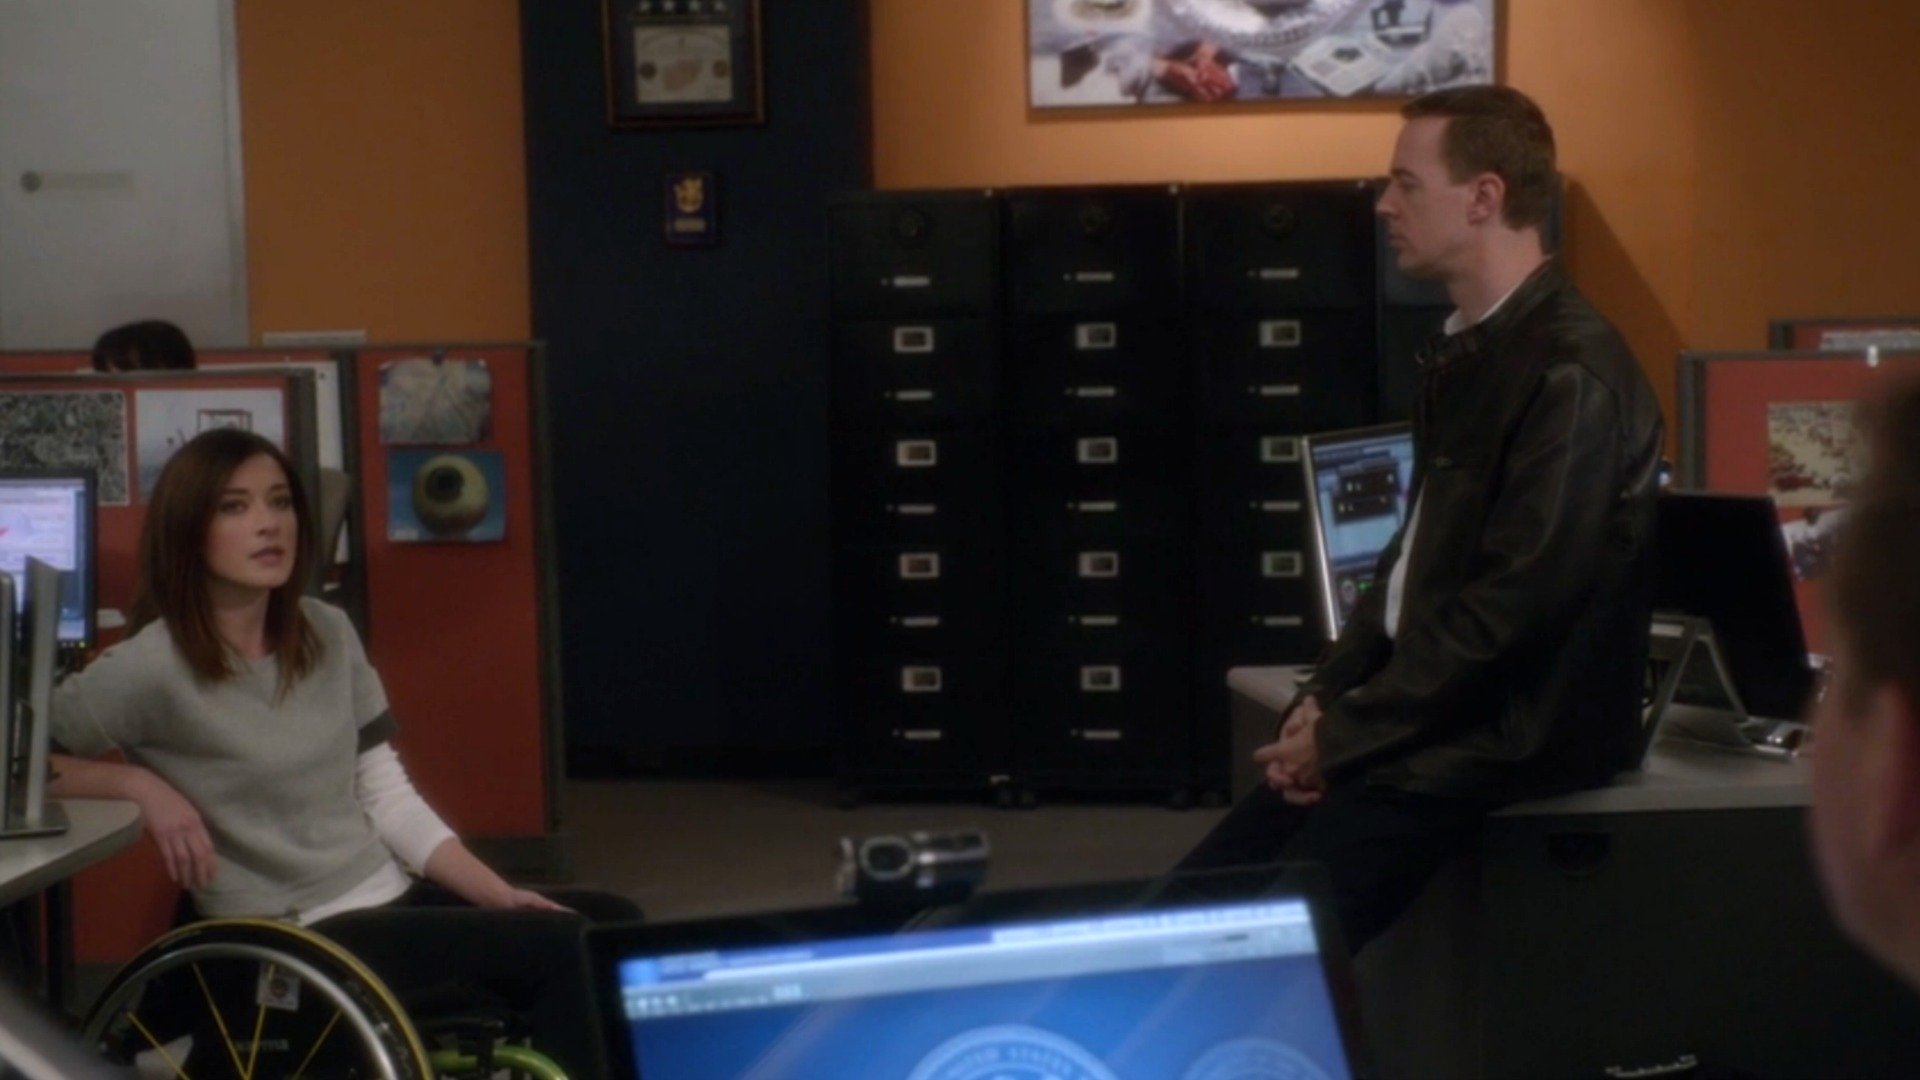 Delilah and McGee had an adorkable lover's quarrel at NCIS.